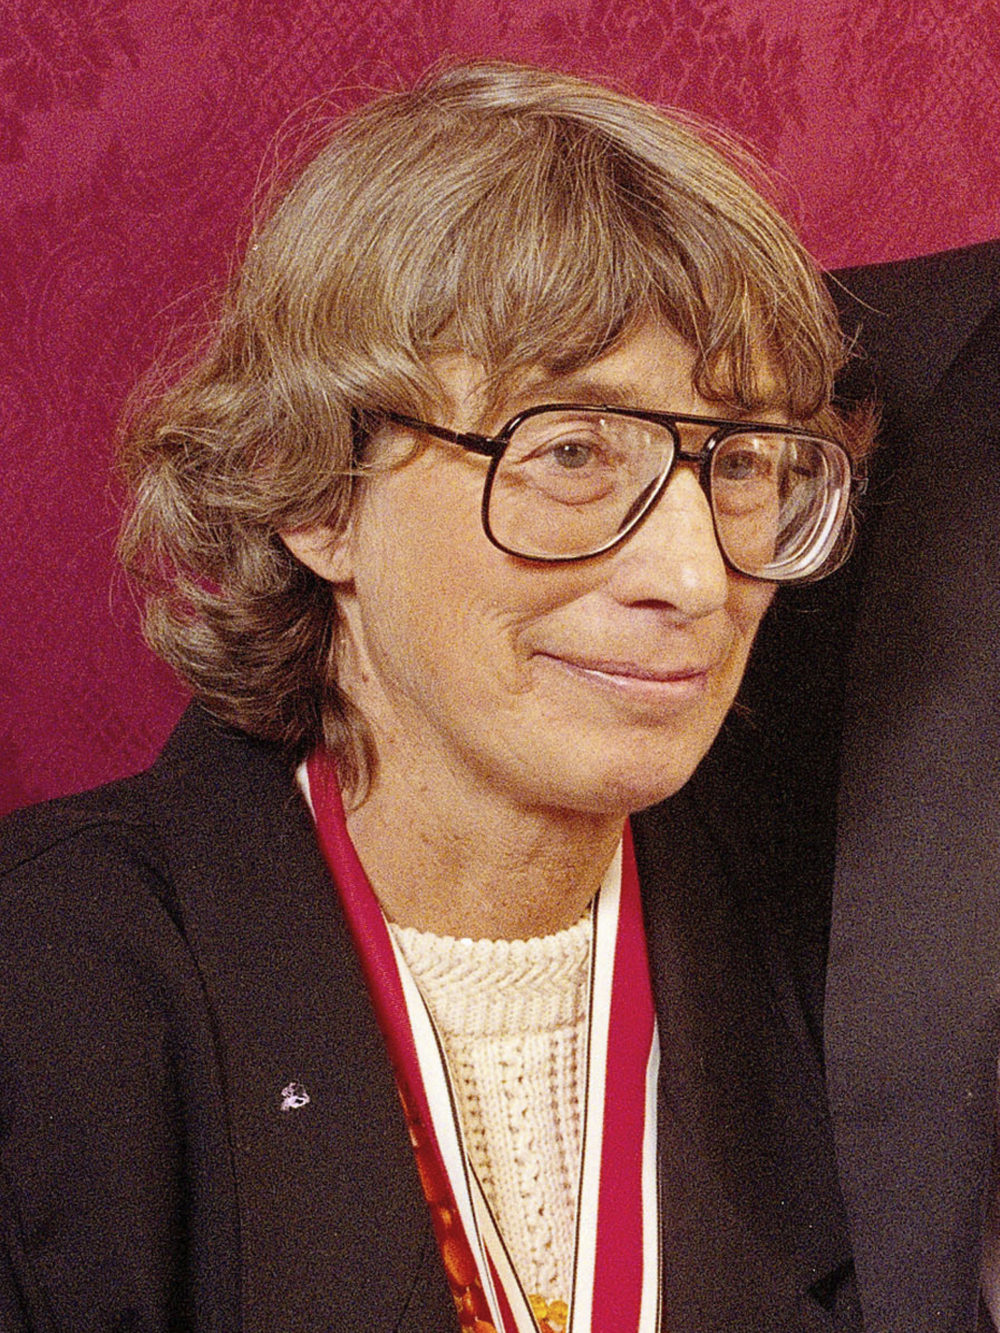 """FILE - In this Nov. 18, 1992 file photo, Mary Oliver appears at the National Book Awards in New York where she received the poetry award for her book """"New and Selected Poems."""" Oliver, a Pulitzer Prize-winning poet whose rapturous odes to nature and animal life brought her critical acclaim and popular affection, died Thursday at her home in Hobe Sound, Fla. The case of death was lymphoma. She was 83. (AP Photo/Mark Lennihan, File)"""